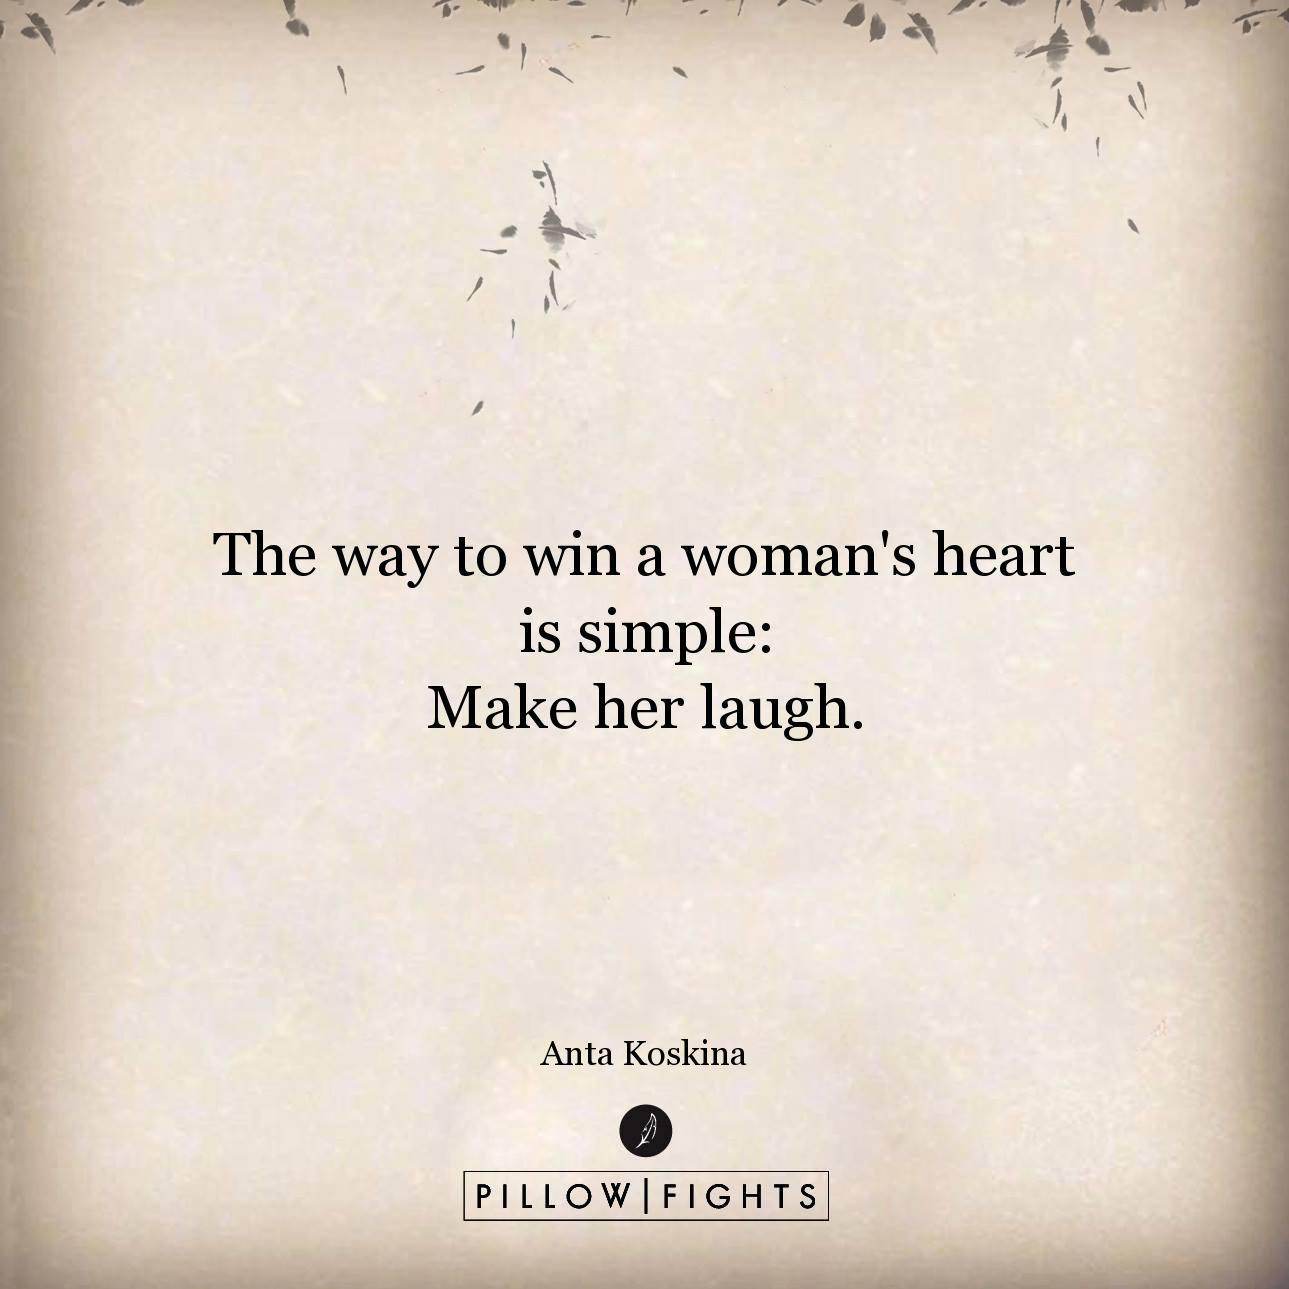 The way to win a woman's heart...